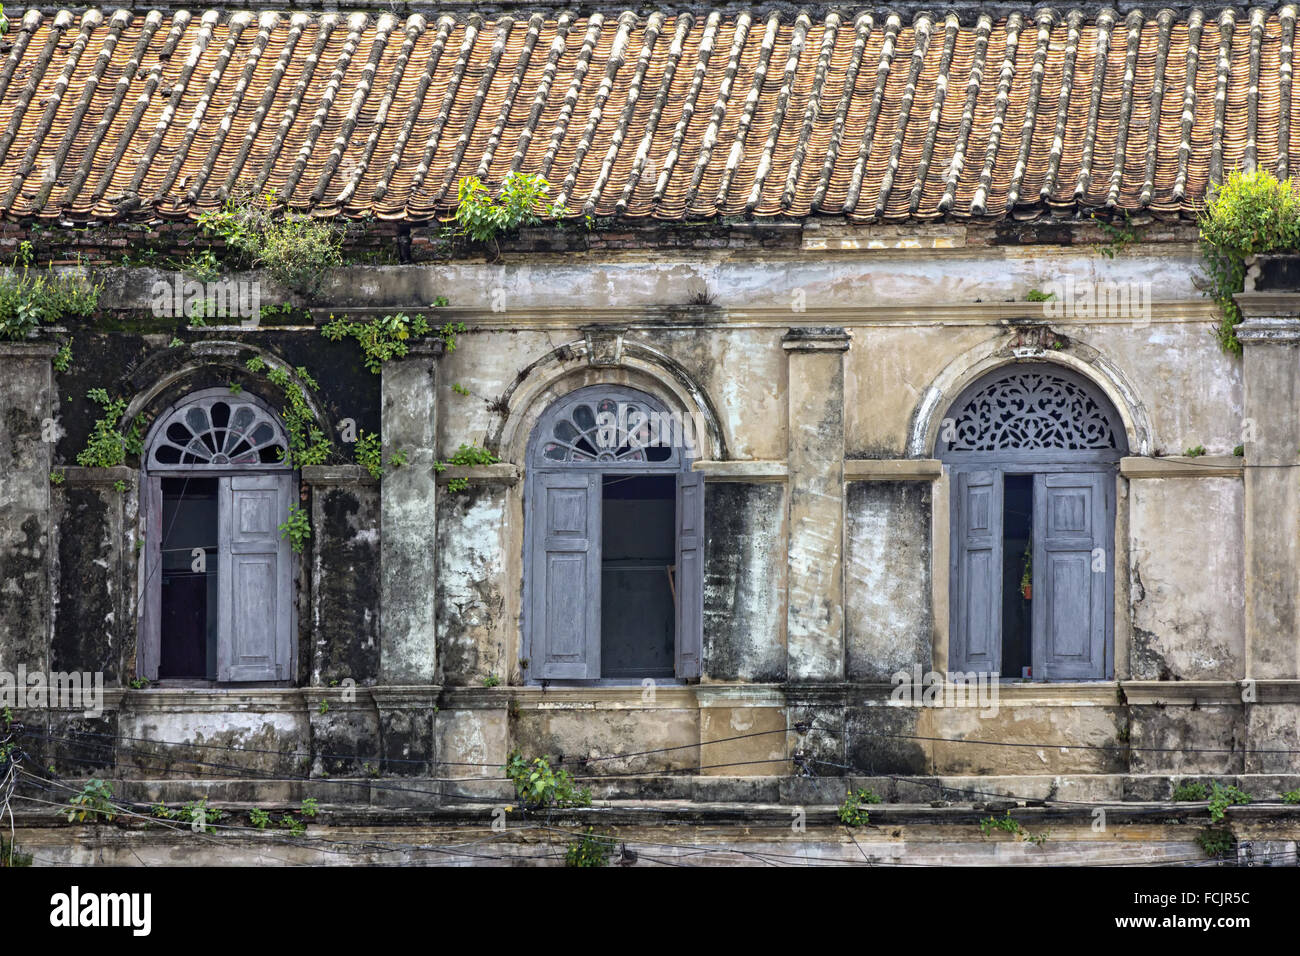 Windows in the Old Customs House, Bangkok - Stock Image